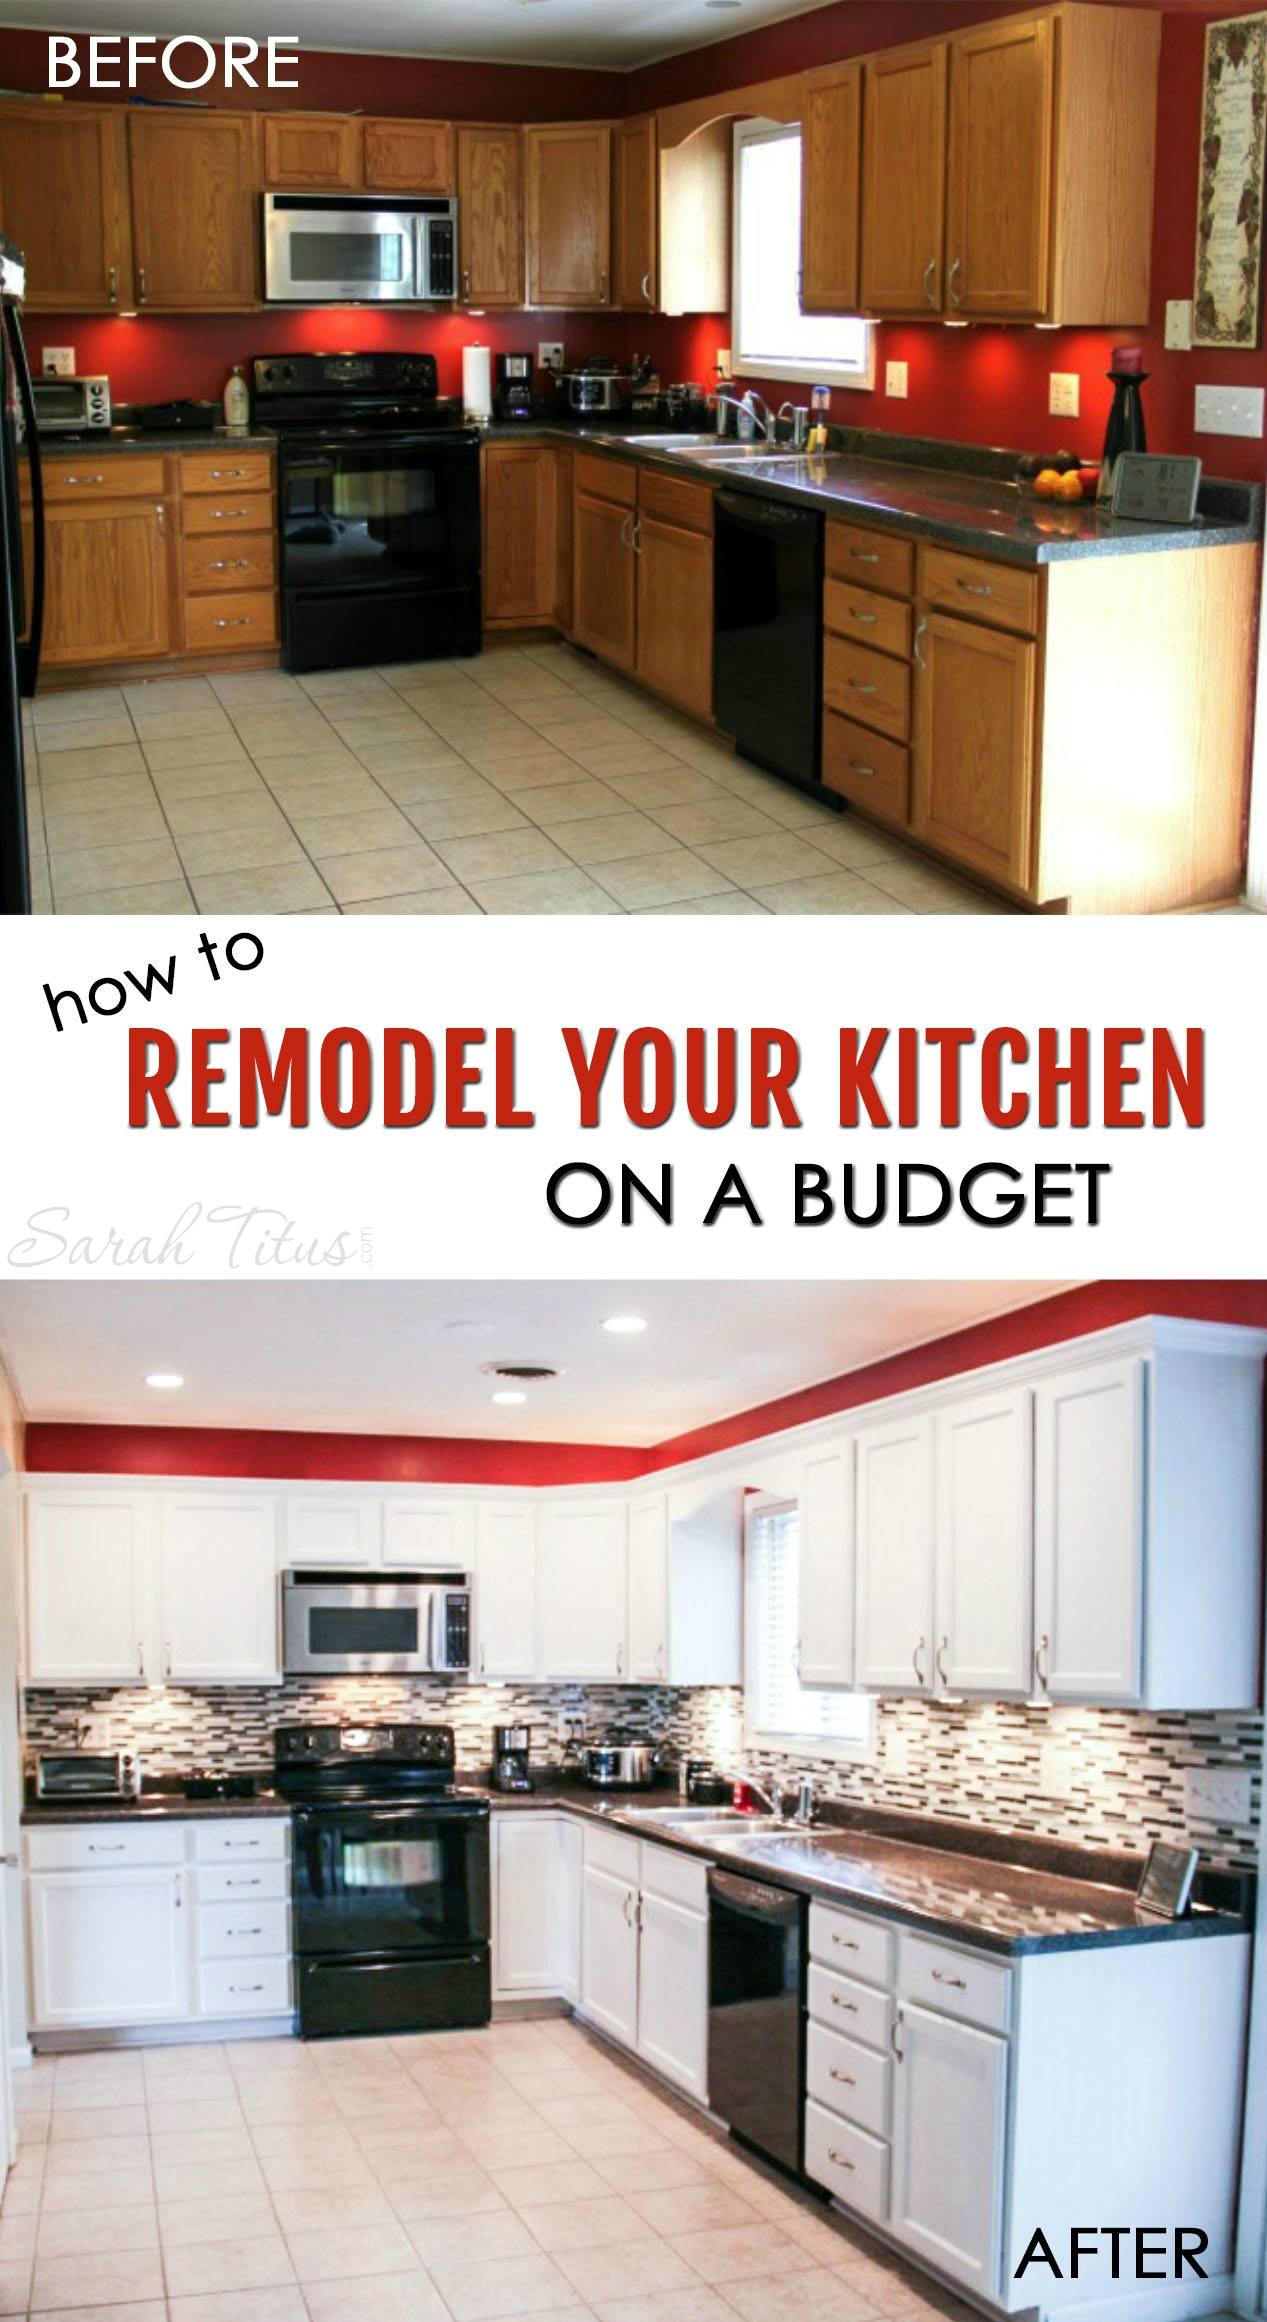 How to remodel your kitchen on a budget sarah titus for Kitchen cabinets update ideas on a budget